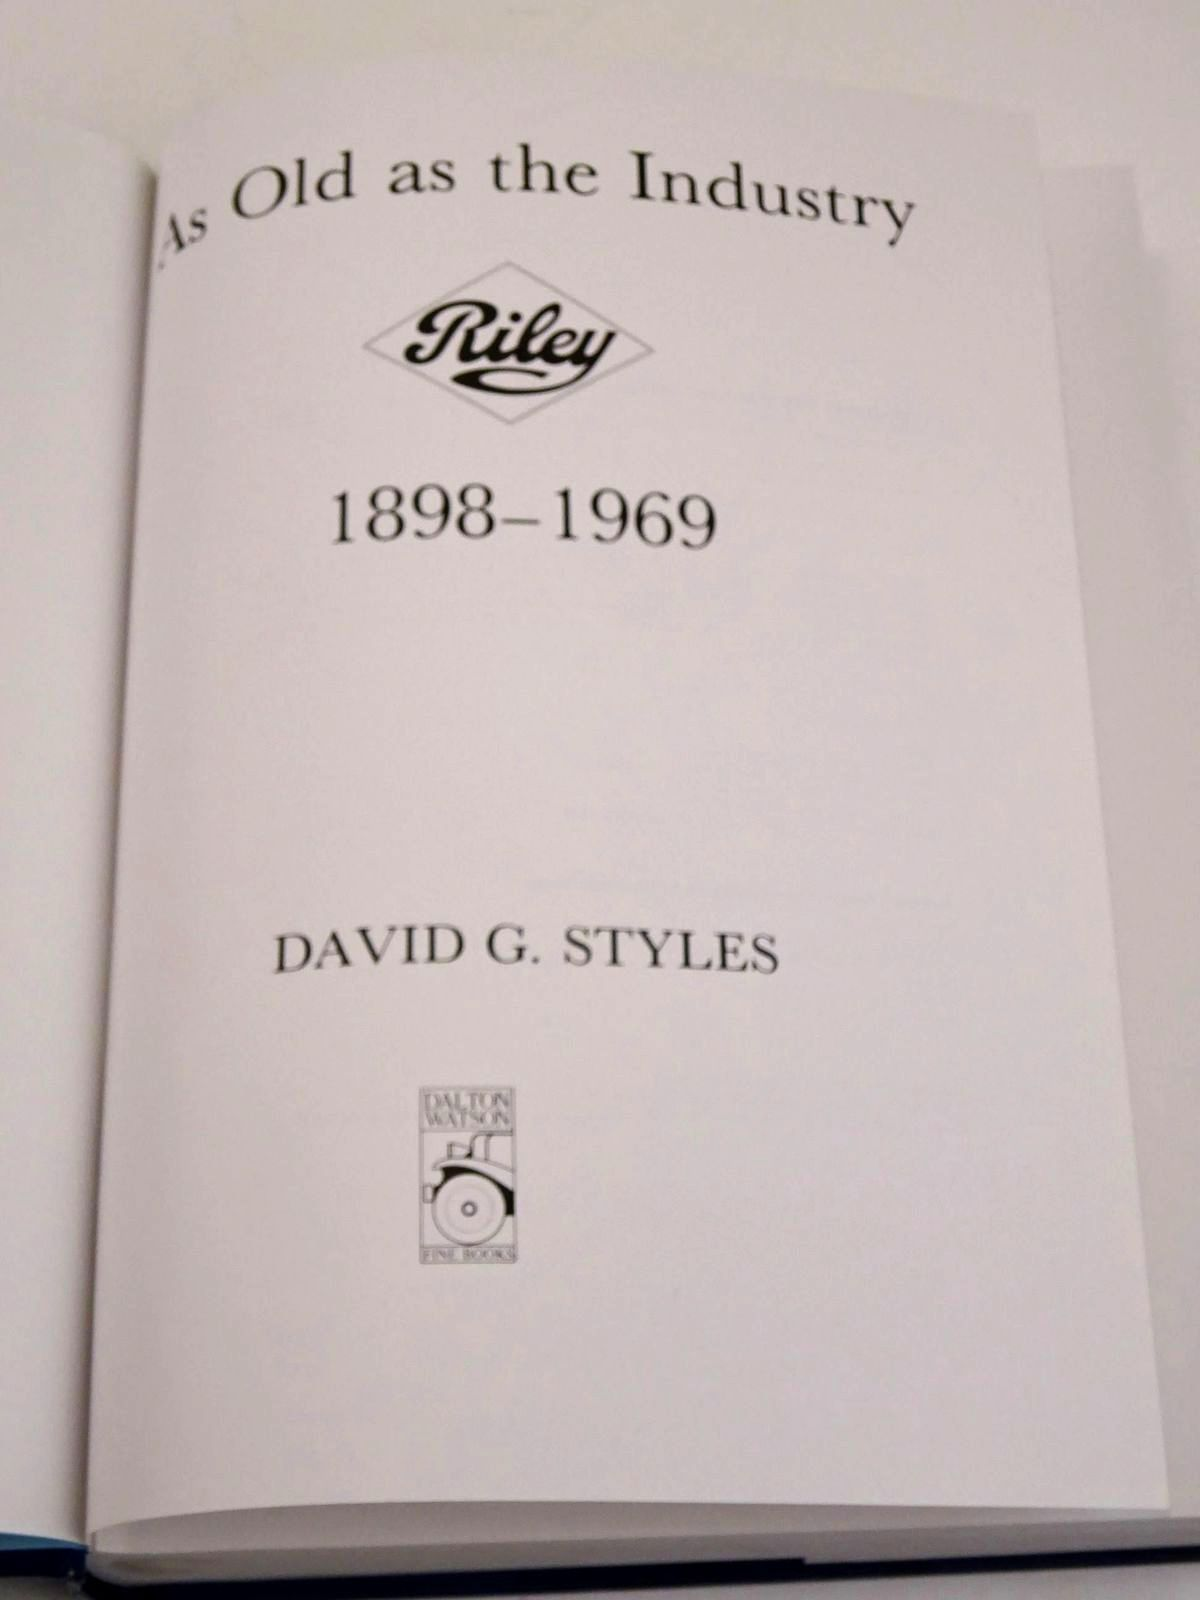 Photo of AS OLD AS THE INDUSTRY: RILEY 1898 - 1969 written by Styles, David G. published by Dalton Watson (STOCK CODE: 1818481)  for sale by Stella & Rose's Books